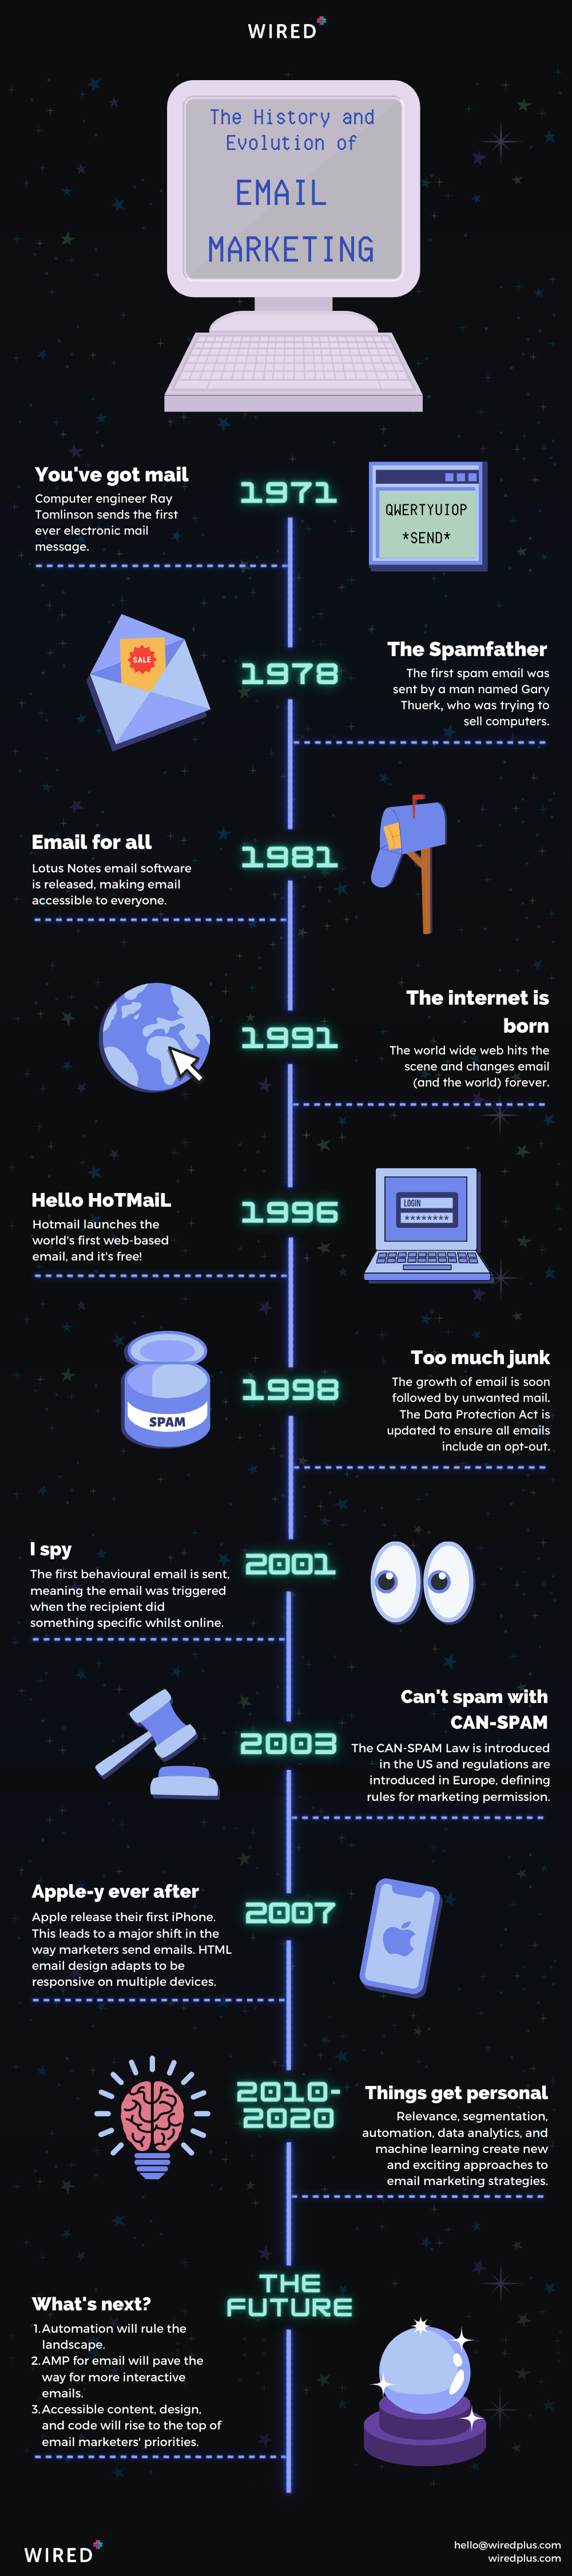 The History and Evolution of Email Marketing timeline infographic